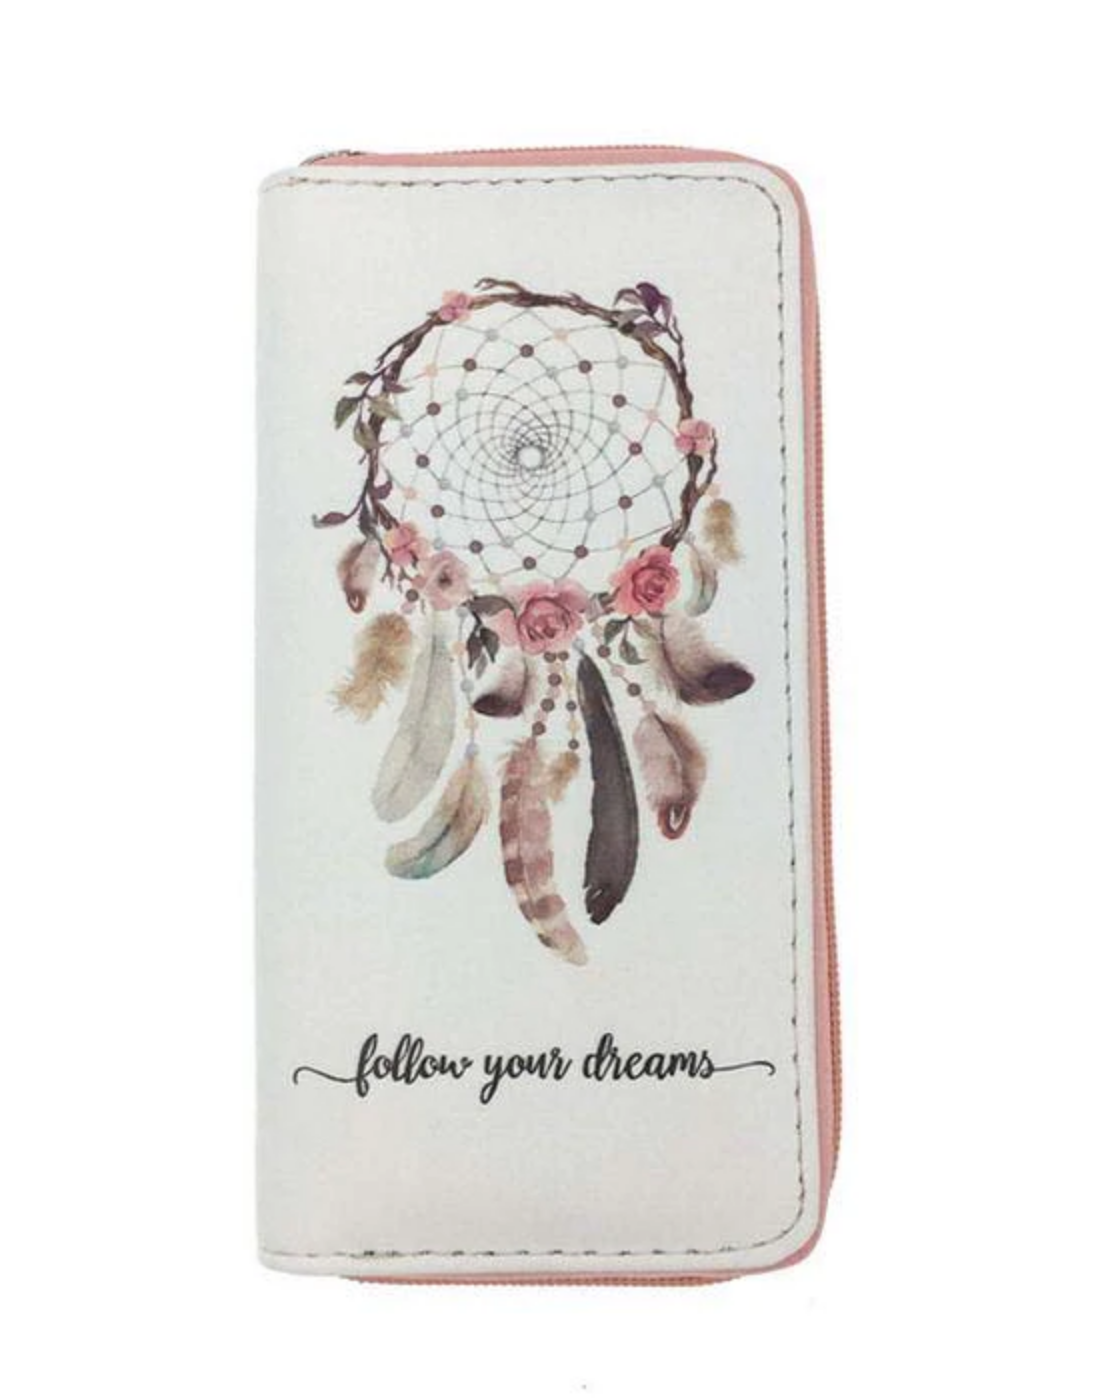 Porte cartes attrape rêves boho boheme chic wallet0202